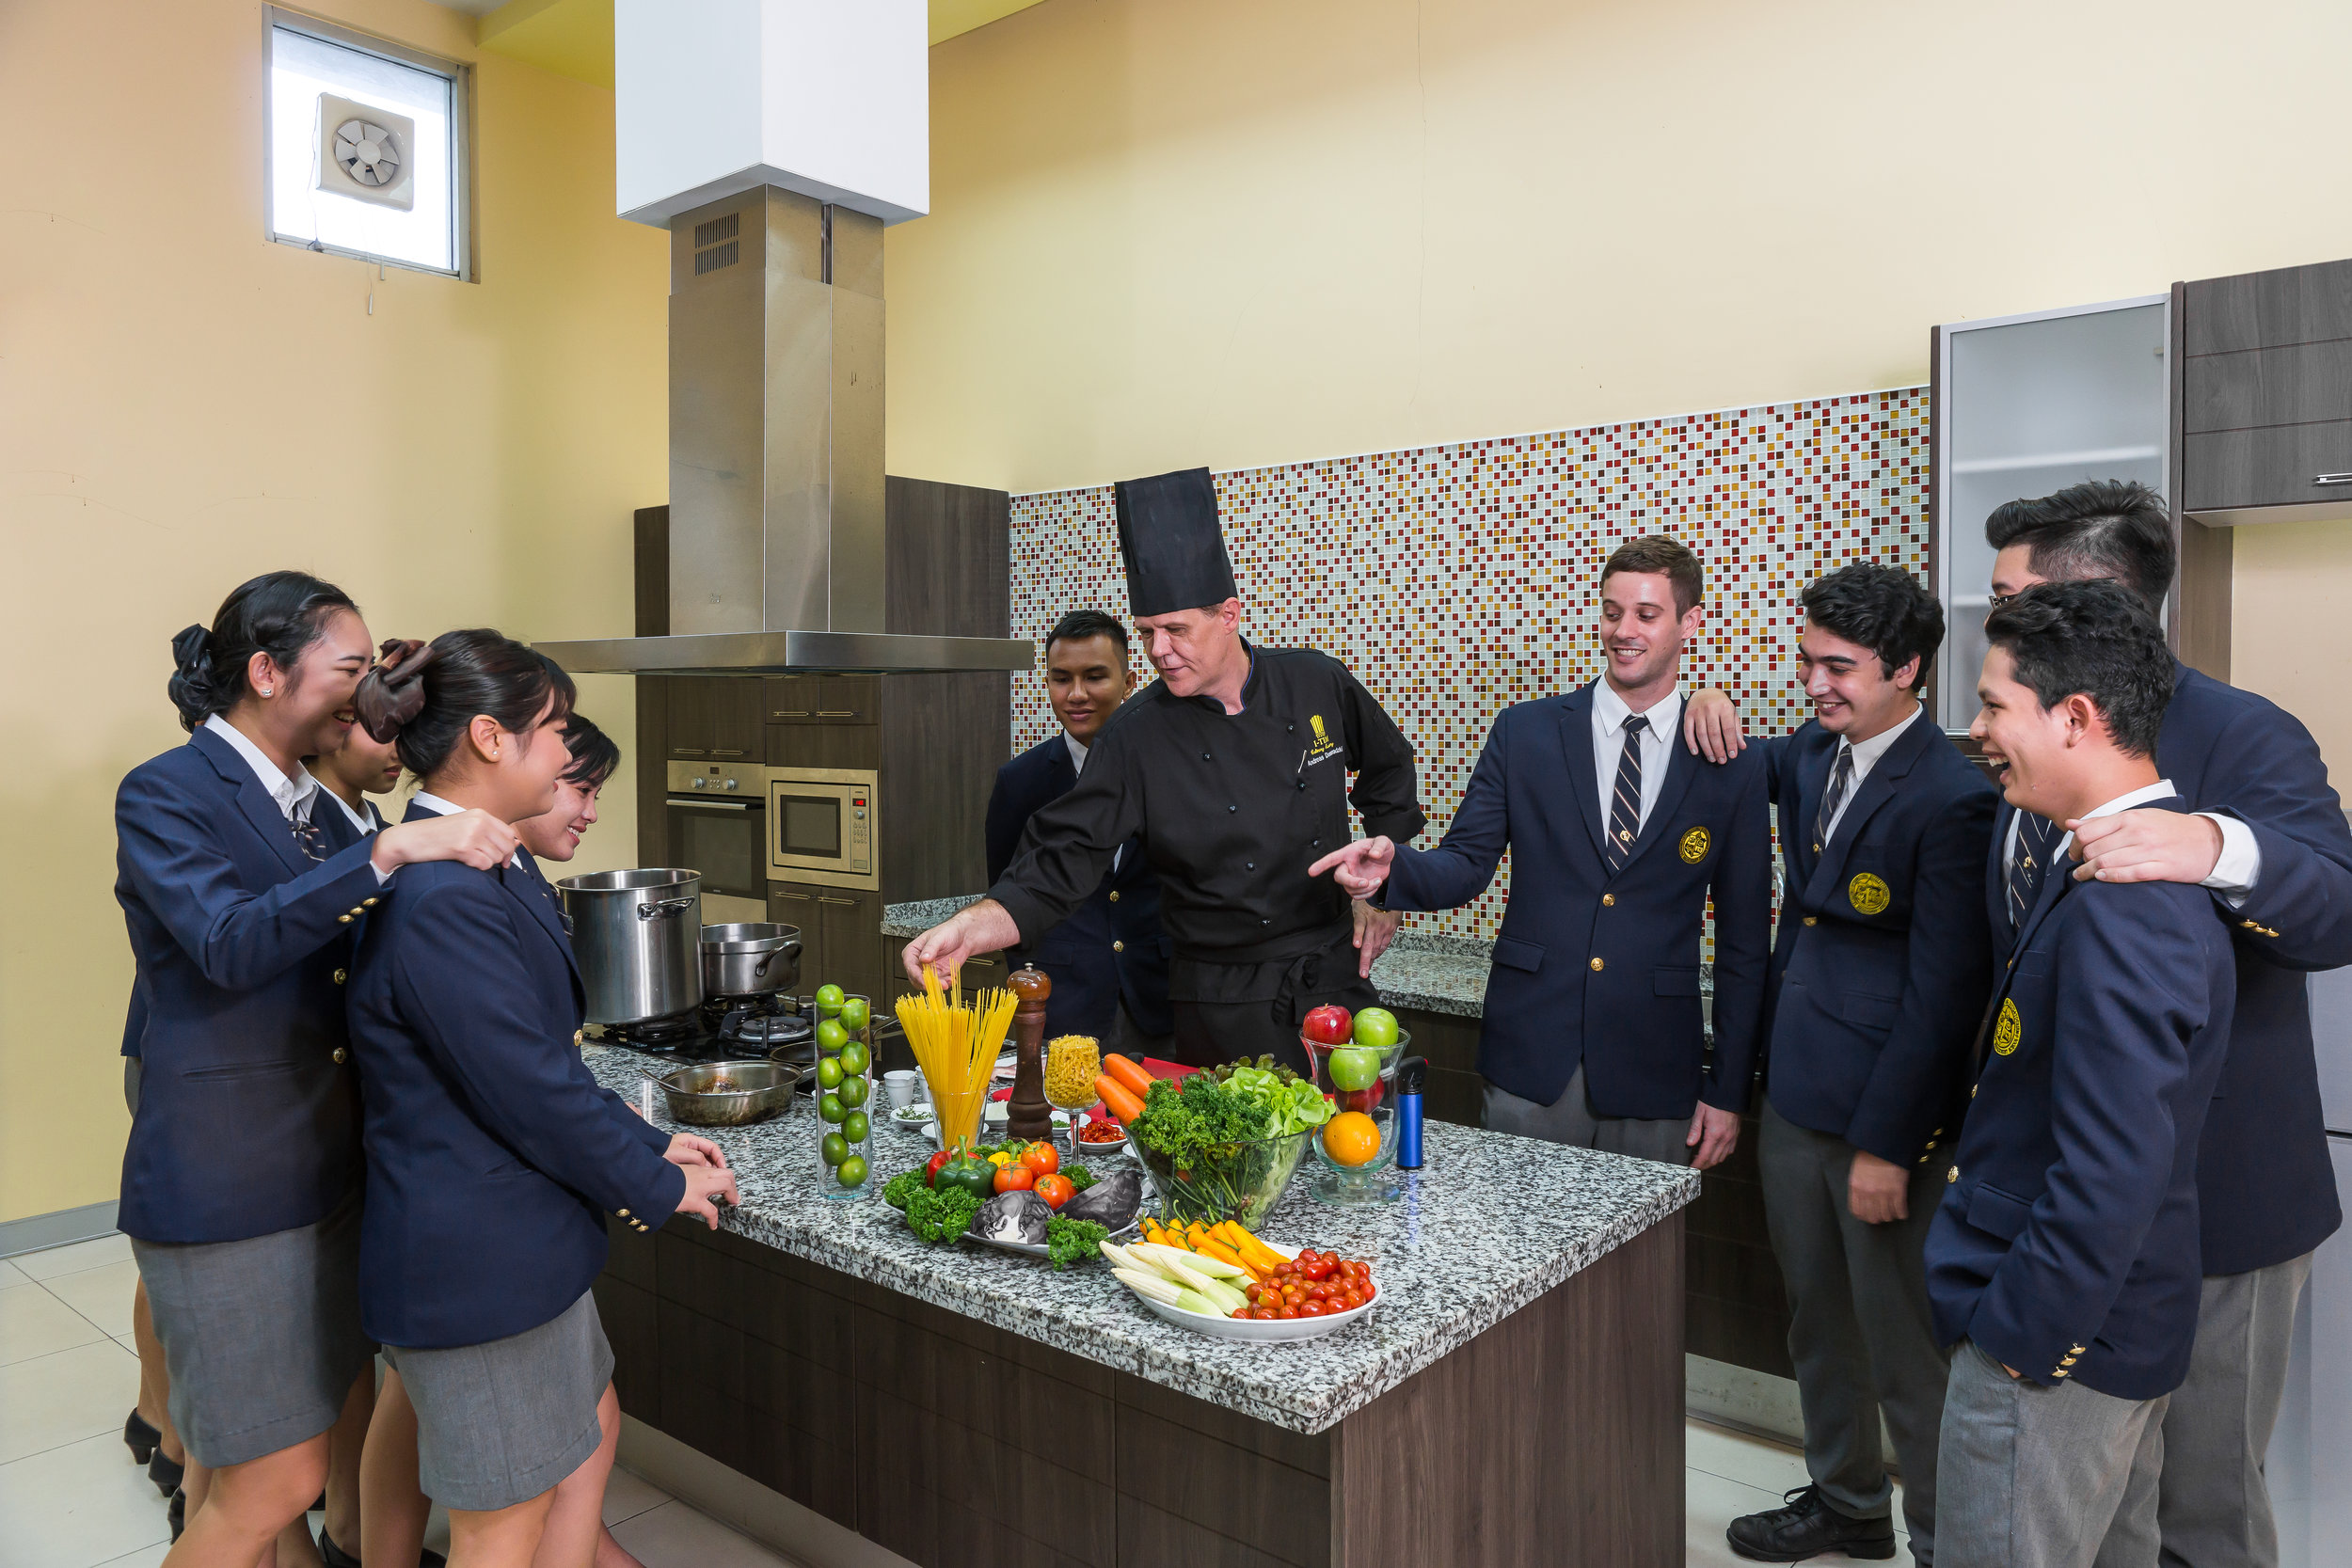 ….Our Flexible Programs..หลักสูตรที่ยืดหยุ่น…. - ….We offer diploma and certificate programs with internship experience and hands-on training for the hospitality career that suits you...เรามีหลักสูตรวุฒิบัตรและประกาศนียบัตร มาพร้อมการฝึกงาน และการอบรมโดยตรงเพื่อสายอาชีพด้านการบริการที่เหมาะกับคุณ….